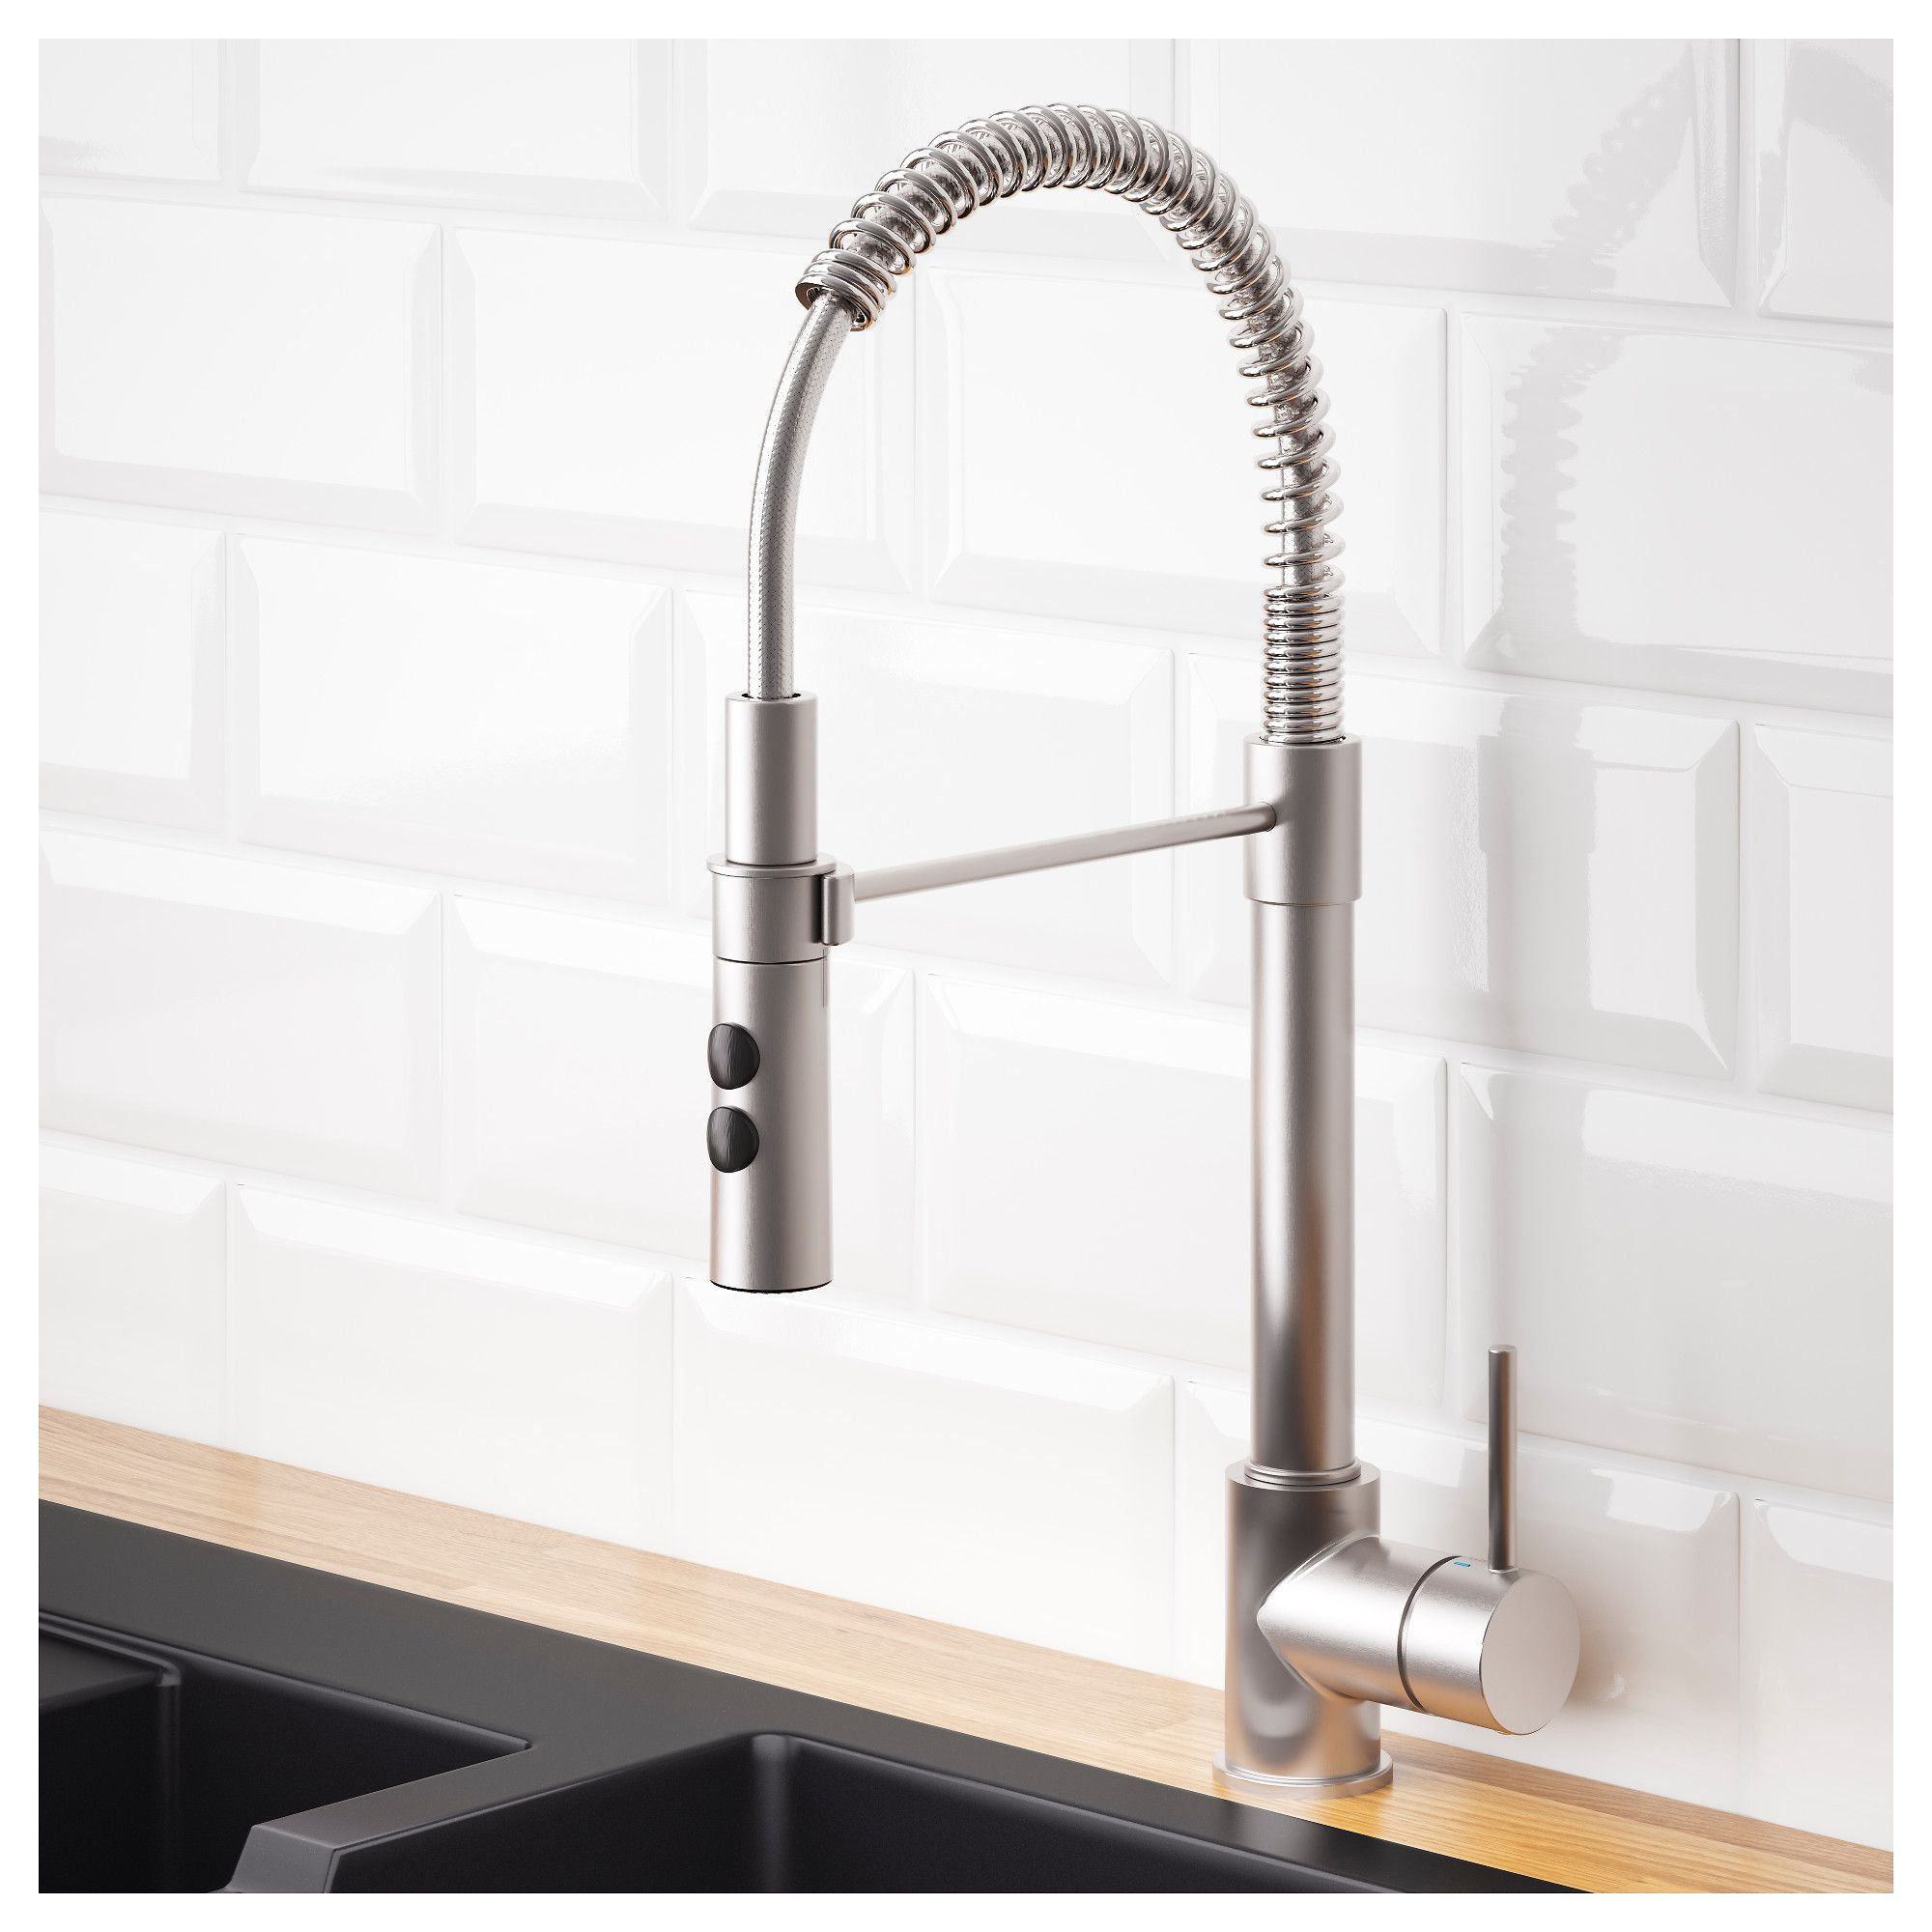 kitchen metro of faucets faucet costco unique all metal hansgrohe luxury inspirational high higharc arc beautiful